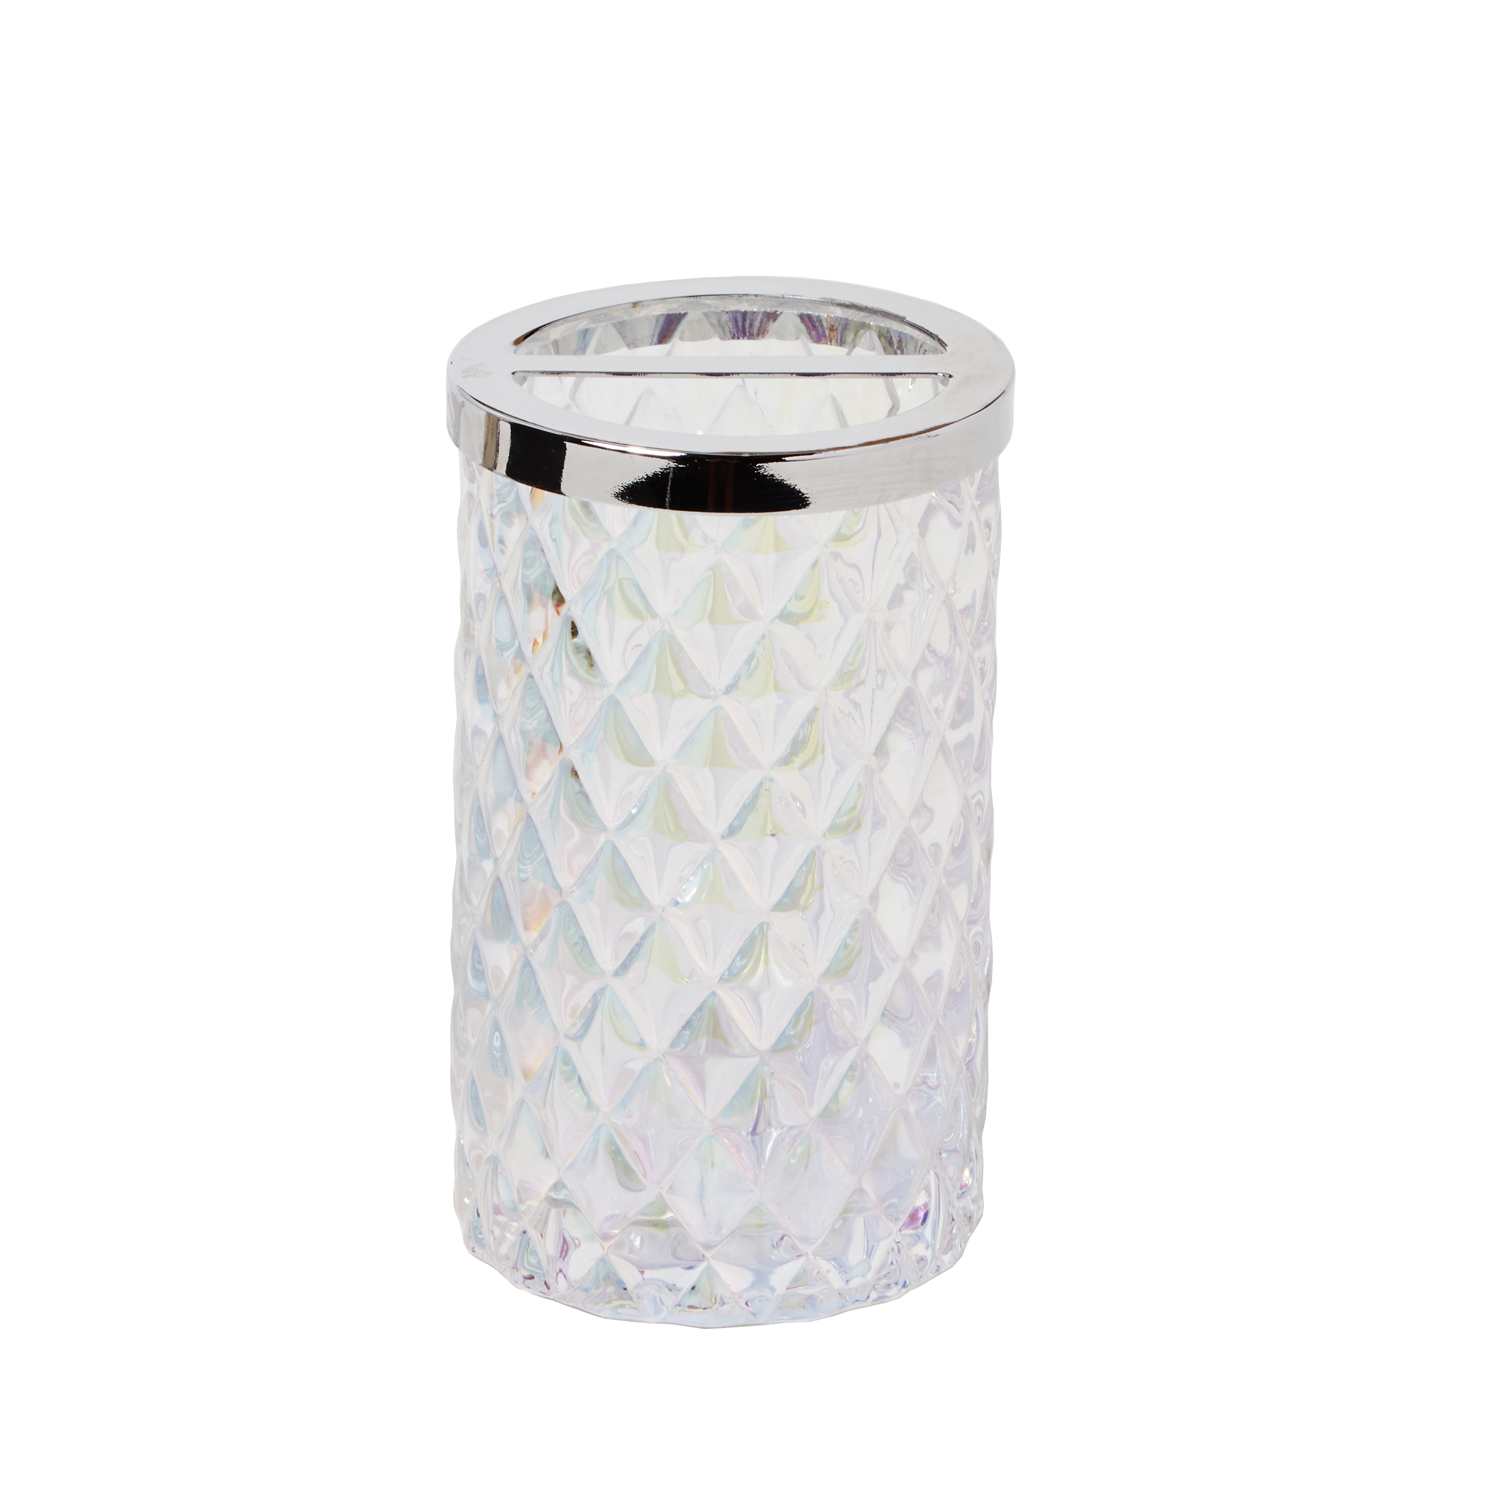 Frosted White Glass Toothbrush Holder